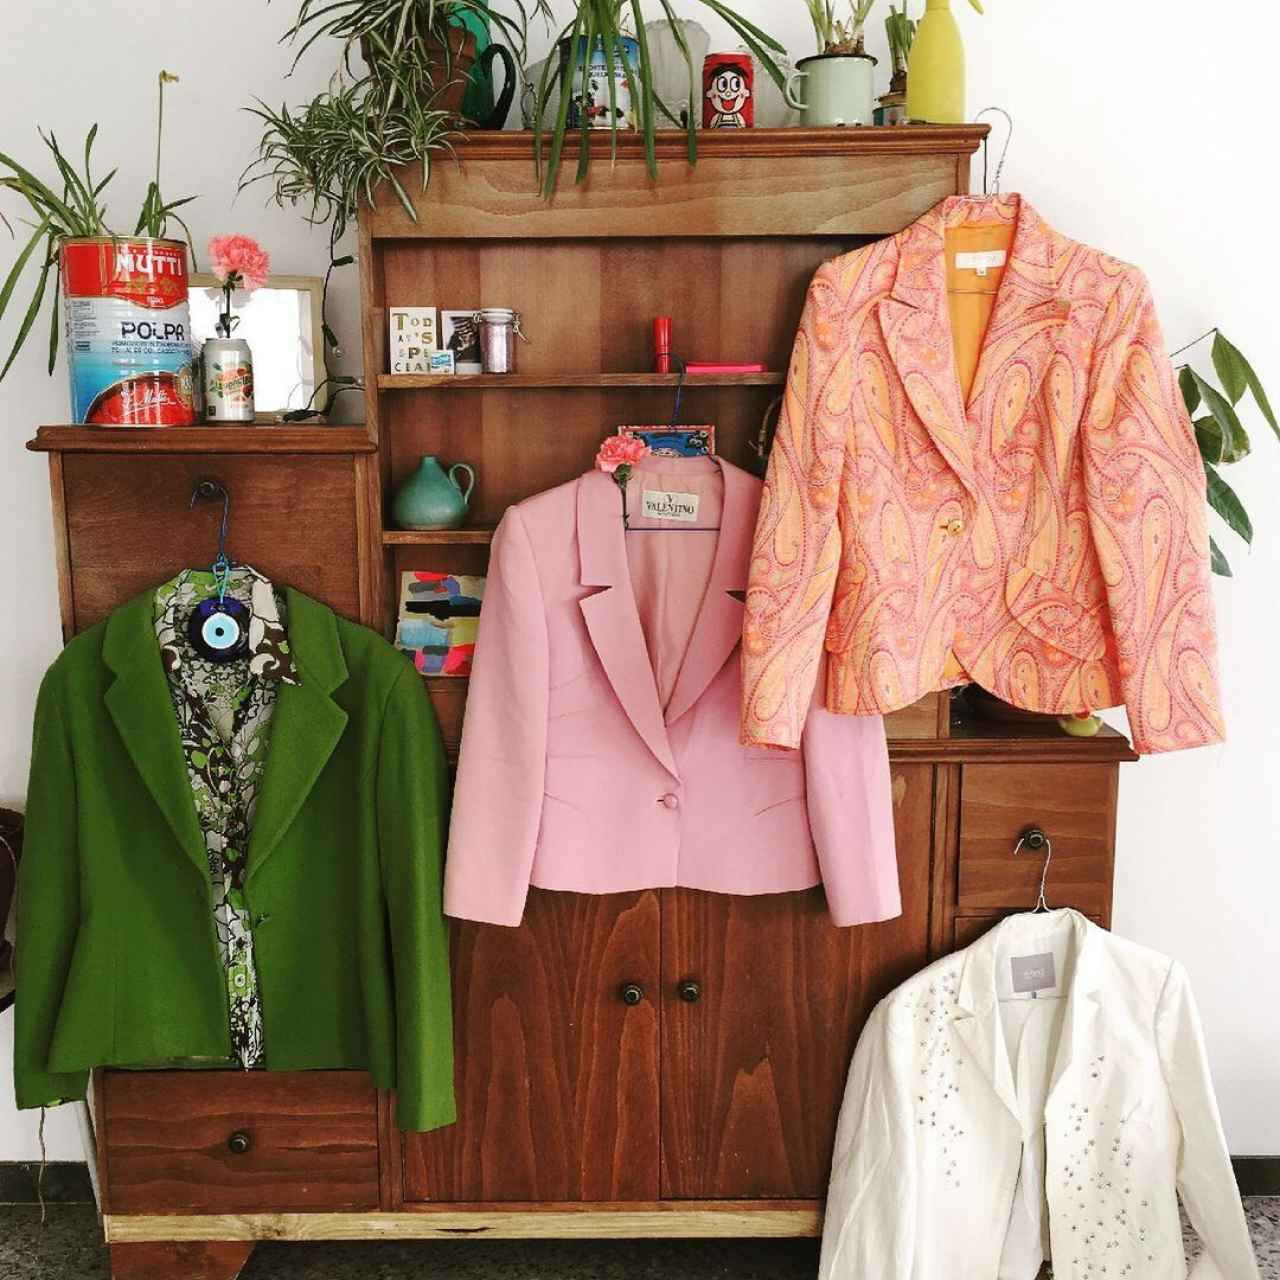 Several of the 'vintage' brand garments offered by Alto Copete.